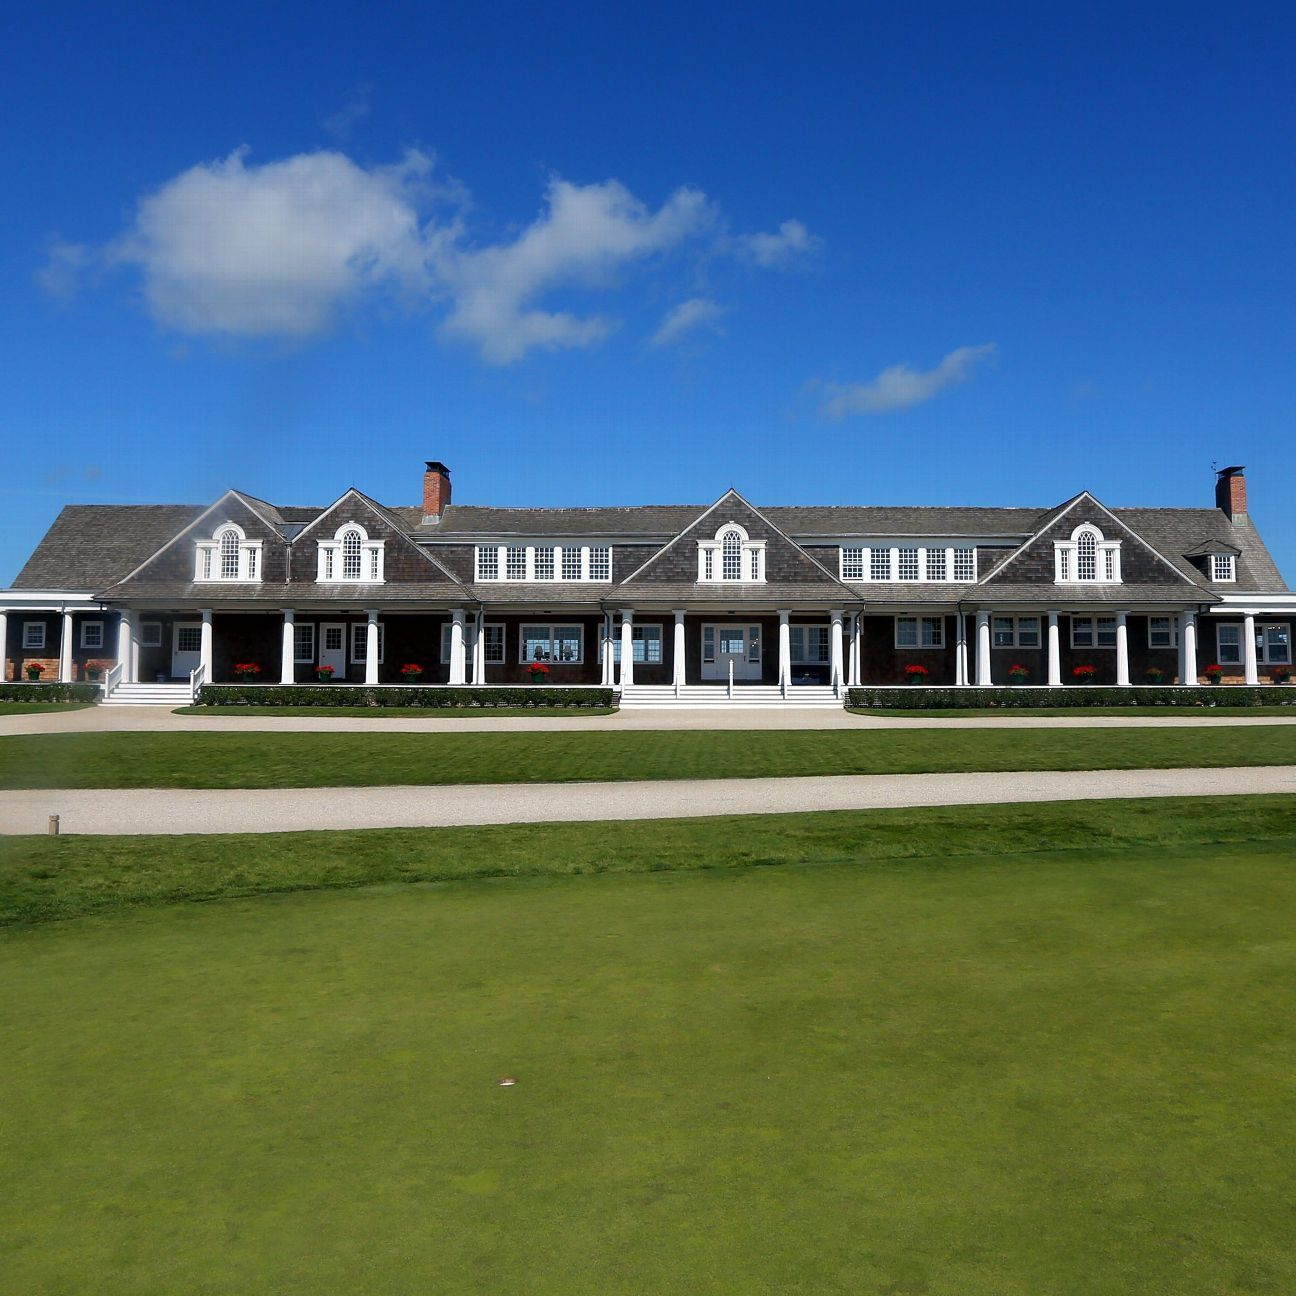 Rory McIlory, Phil Mickelson, Jordan Spieth And The Struggle Of Shinnecock Hills On A Brutal Opening Round Of The 2018 U.S. Open